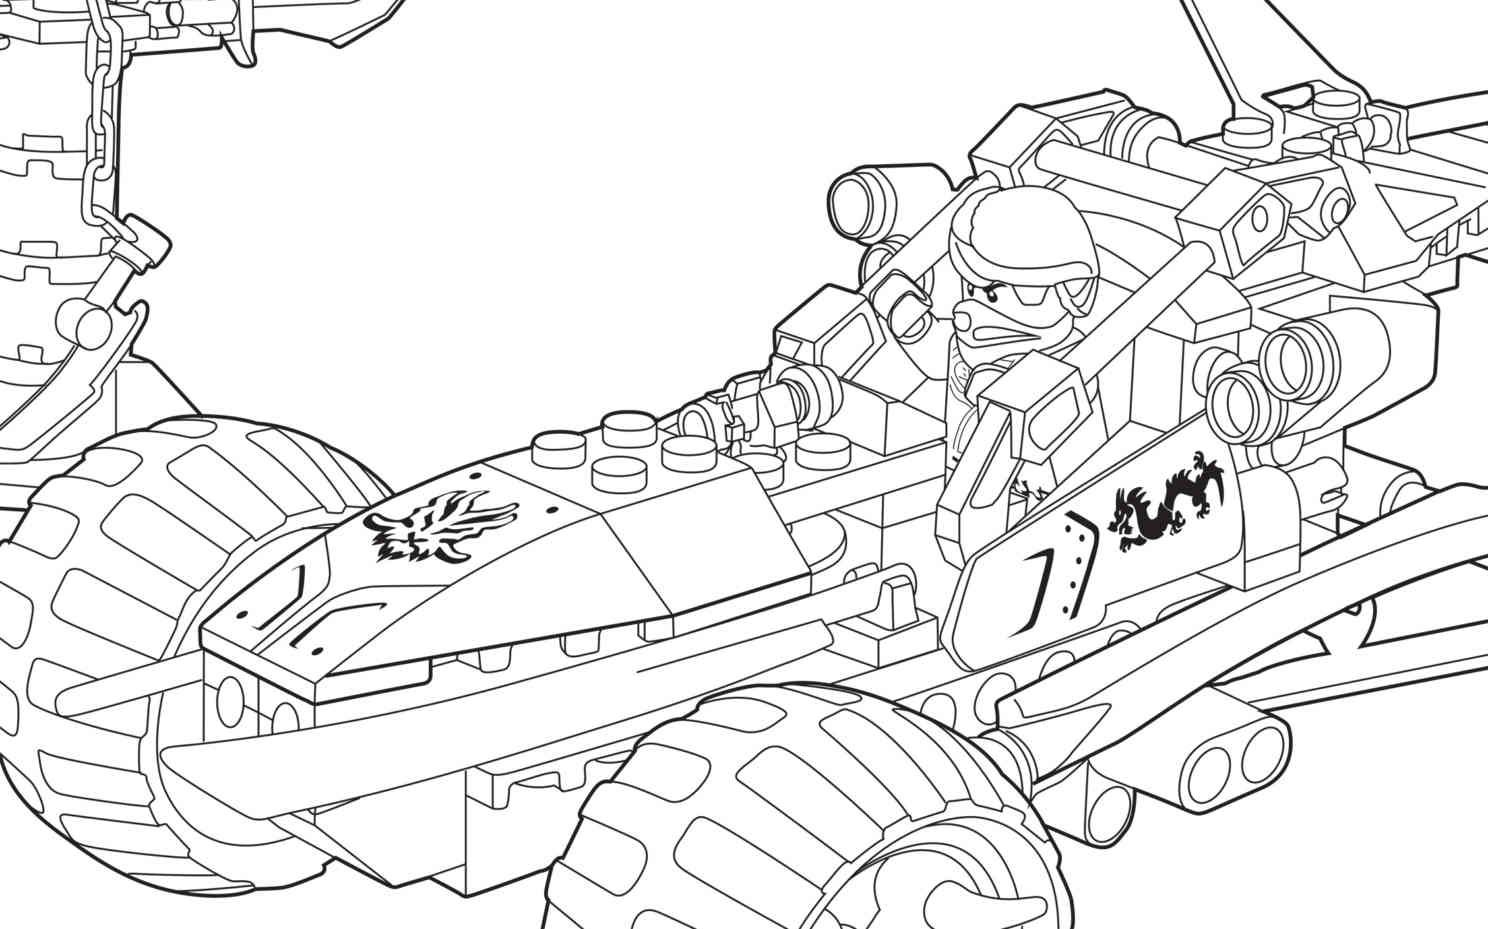 Lego Ninjago 70755 Coloring Sheet Ninjago Pinterest Coloriage